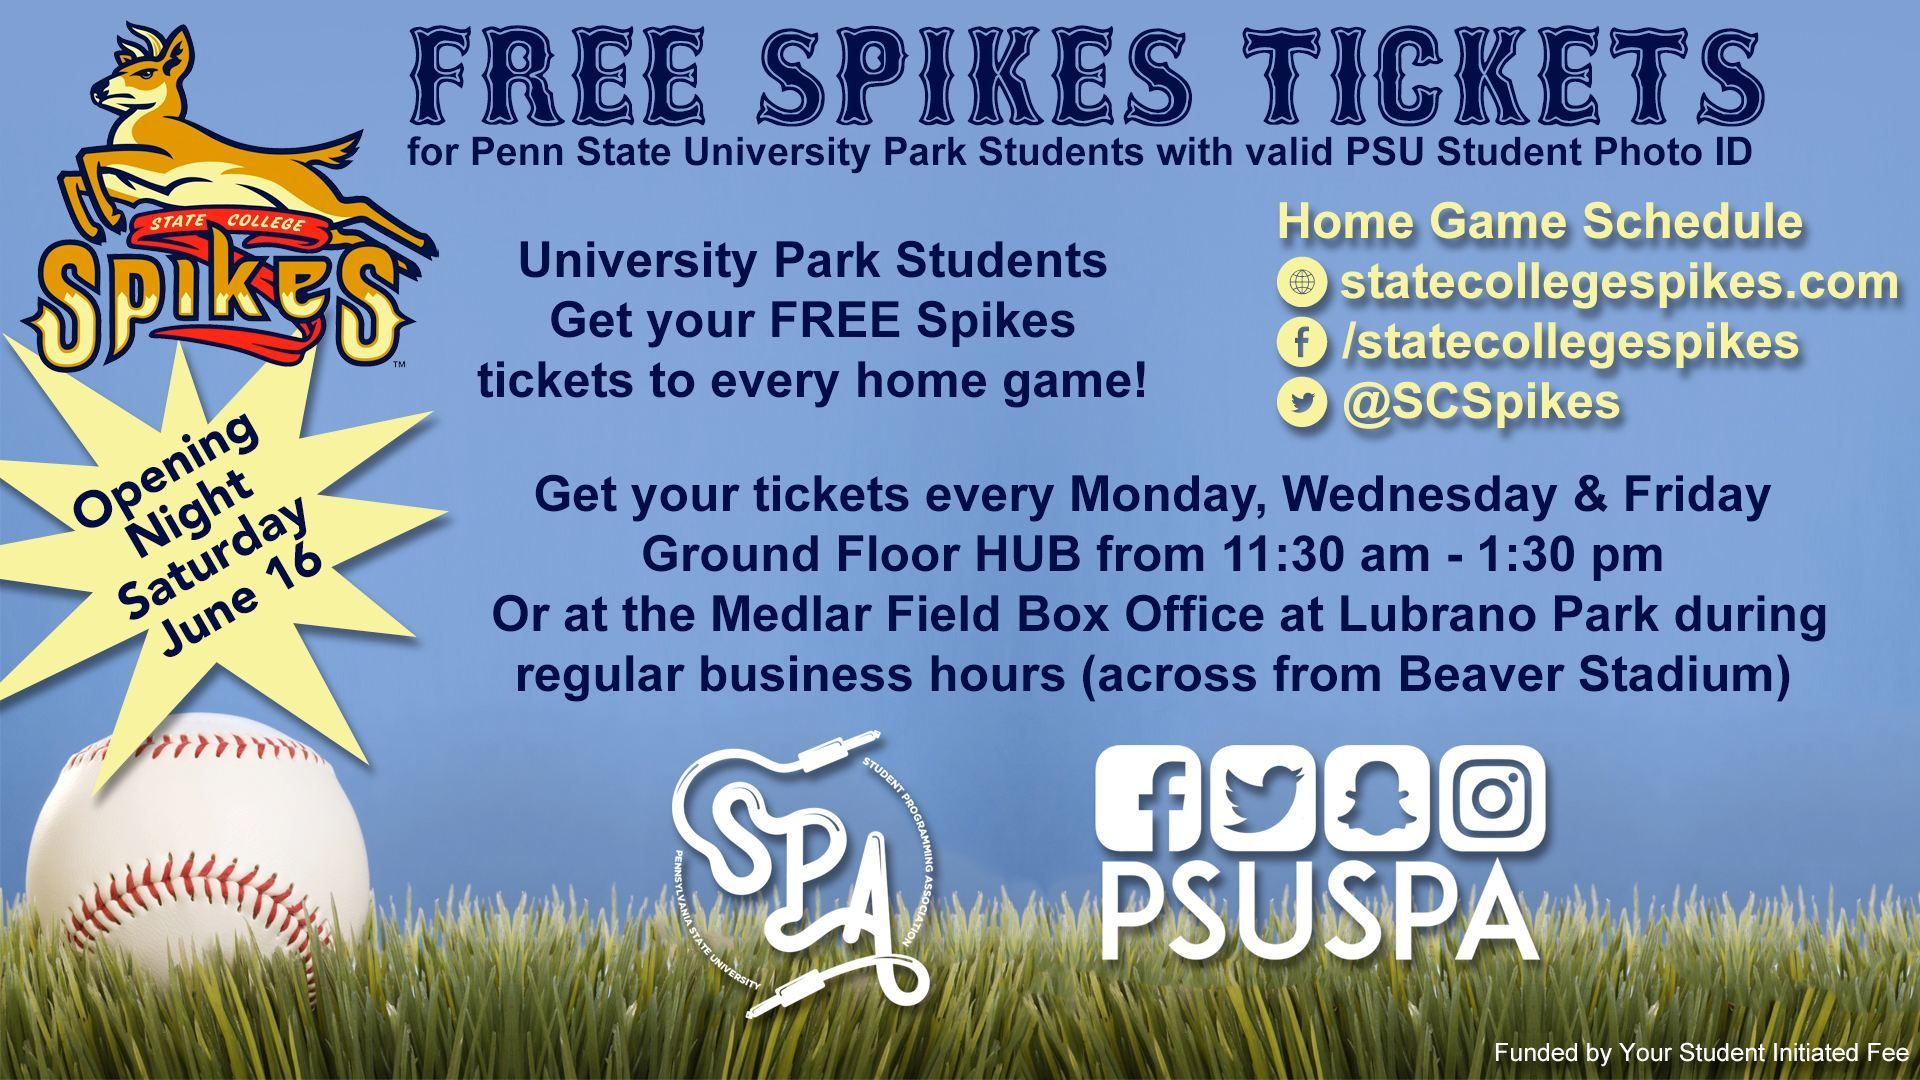 Free Spikes tickets for Penn State students with PSU Photo ID